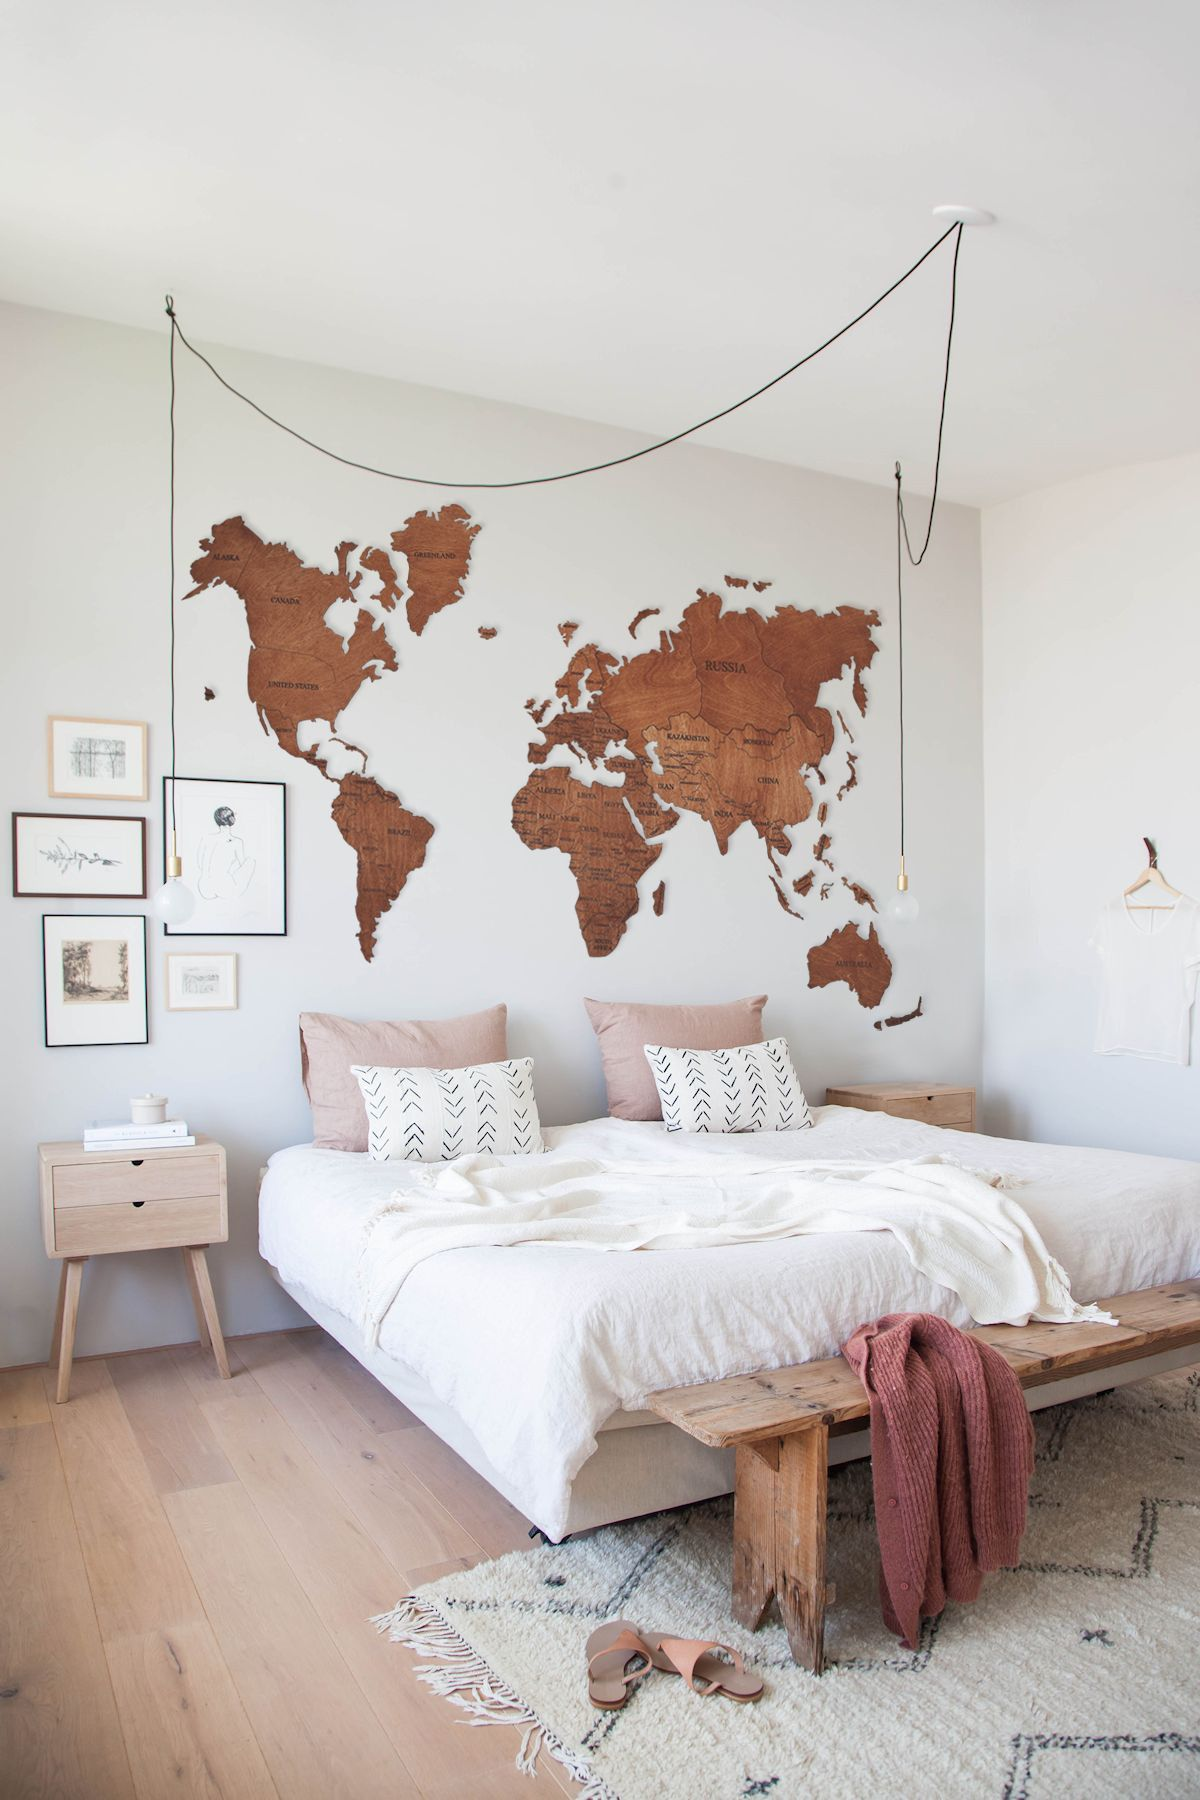 Wood Wall Art Wall Map Of The World Map Wooden Travel Push Pin Map Rustic Home 5th Anniversary Lover Gift Wall Decor Halloween Decor Map Wall Decor World Map Wall Art